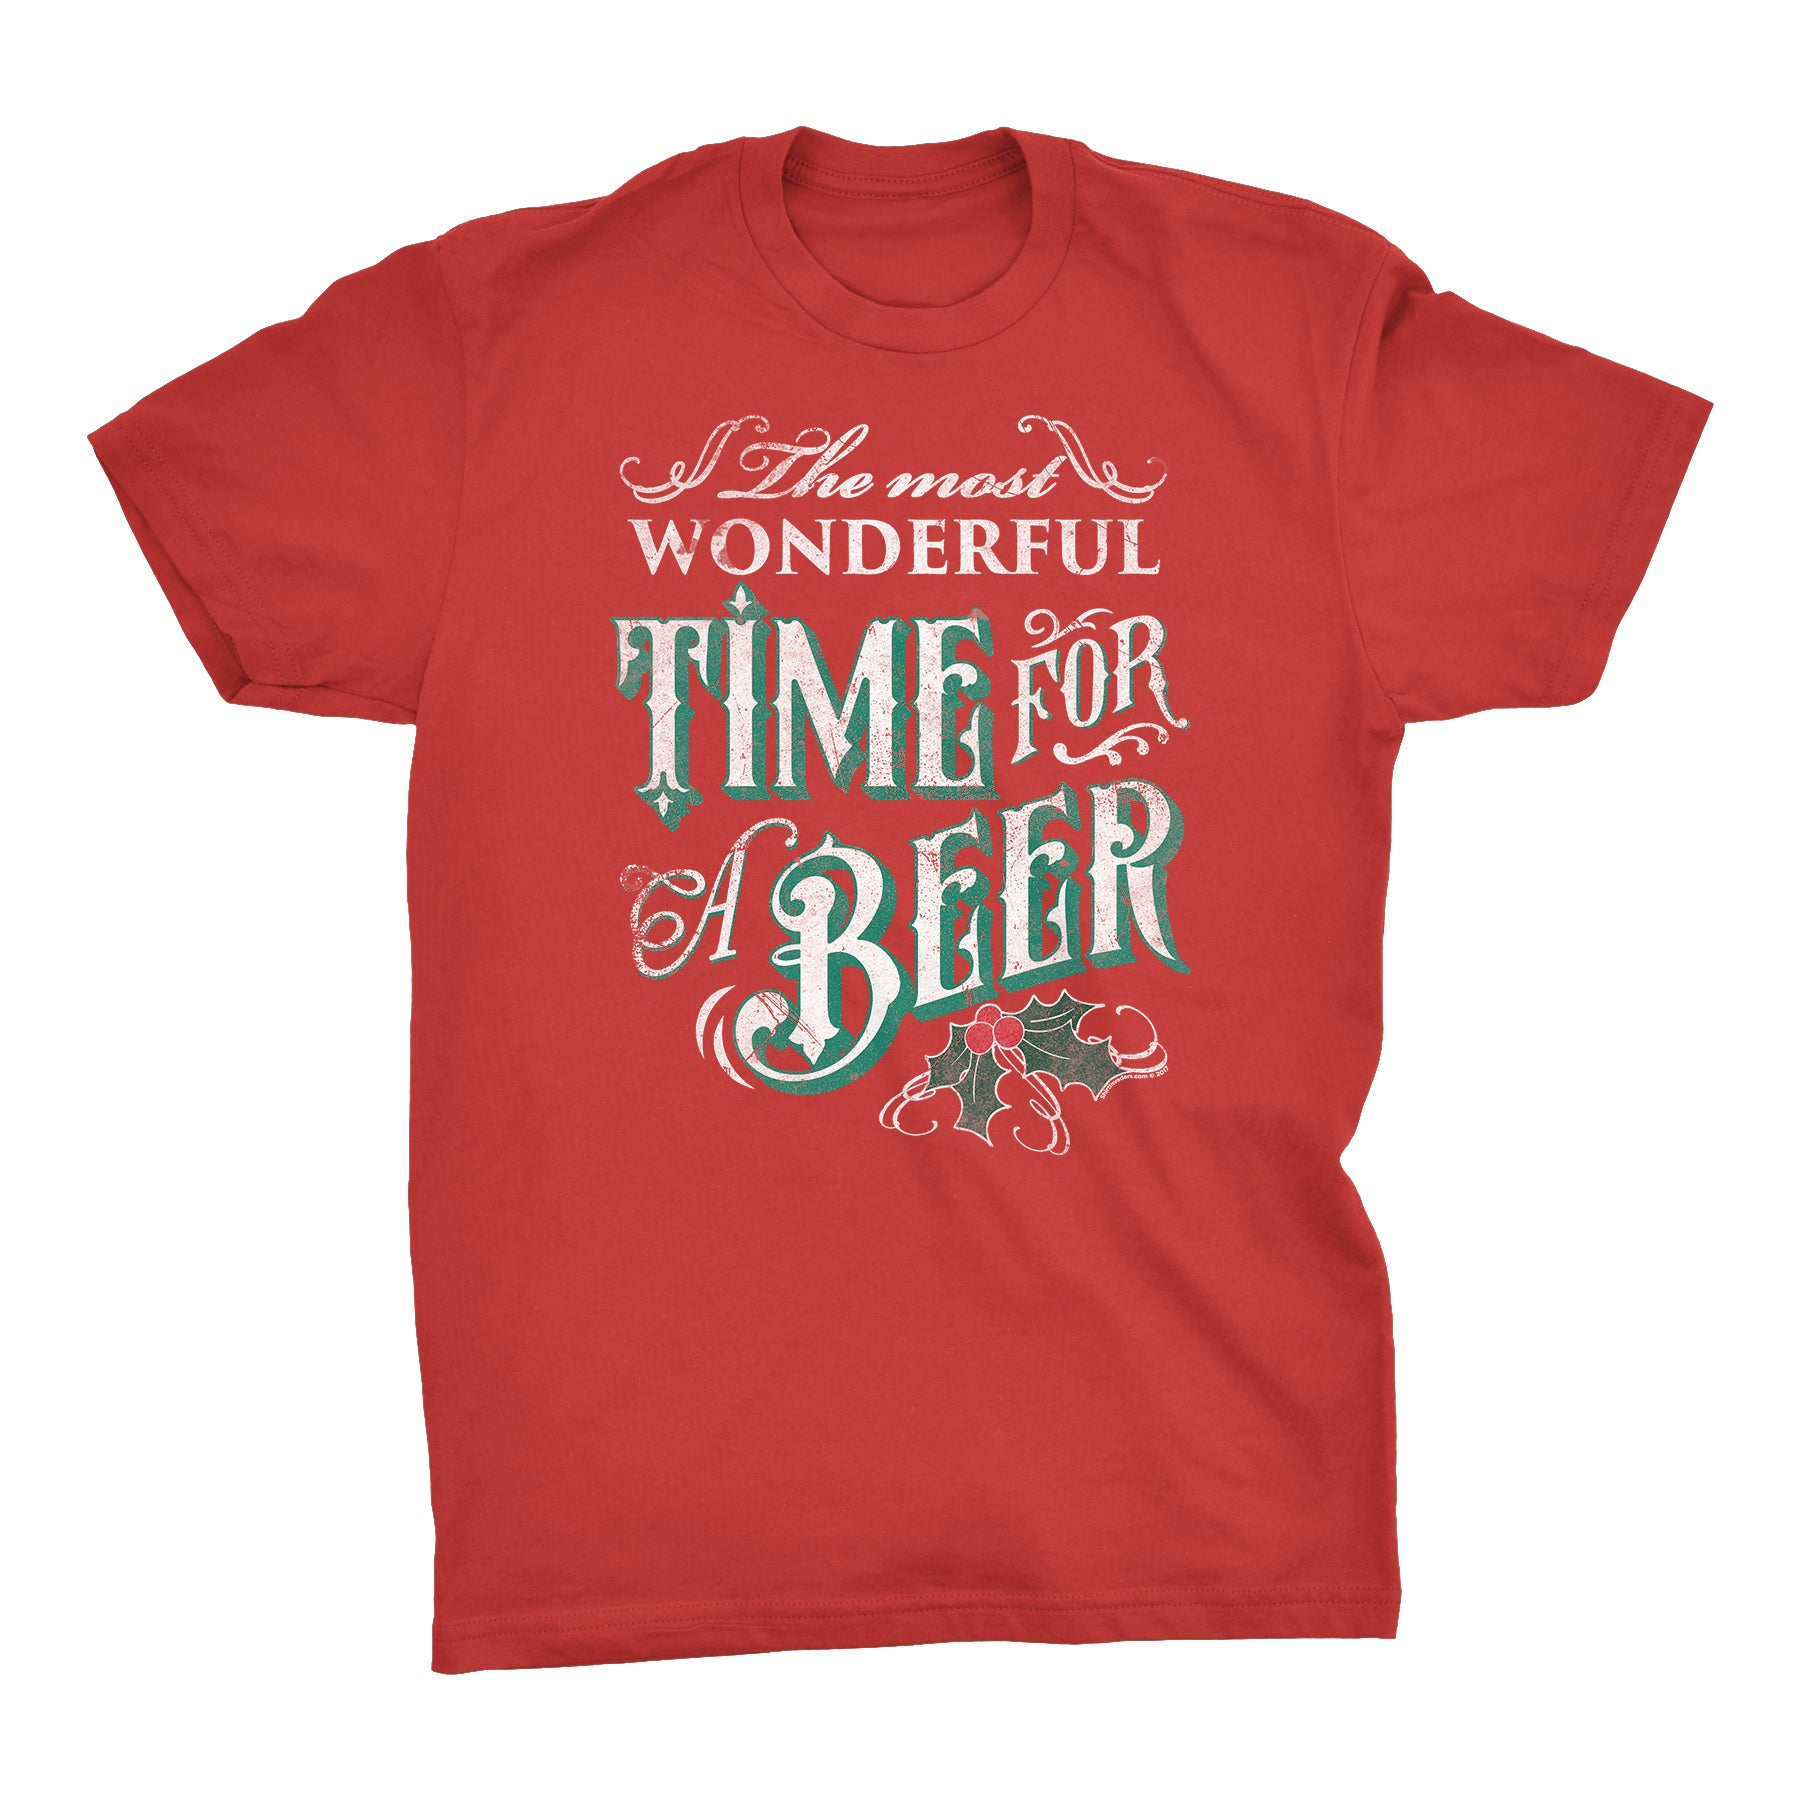 Wonderful Time - Christmas T-shirt